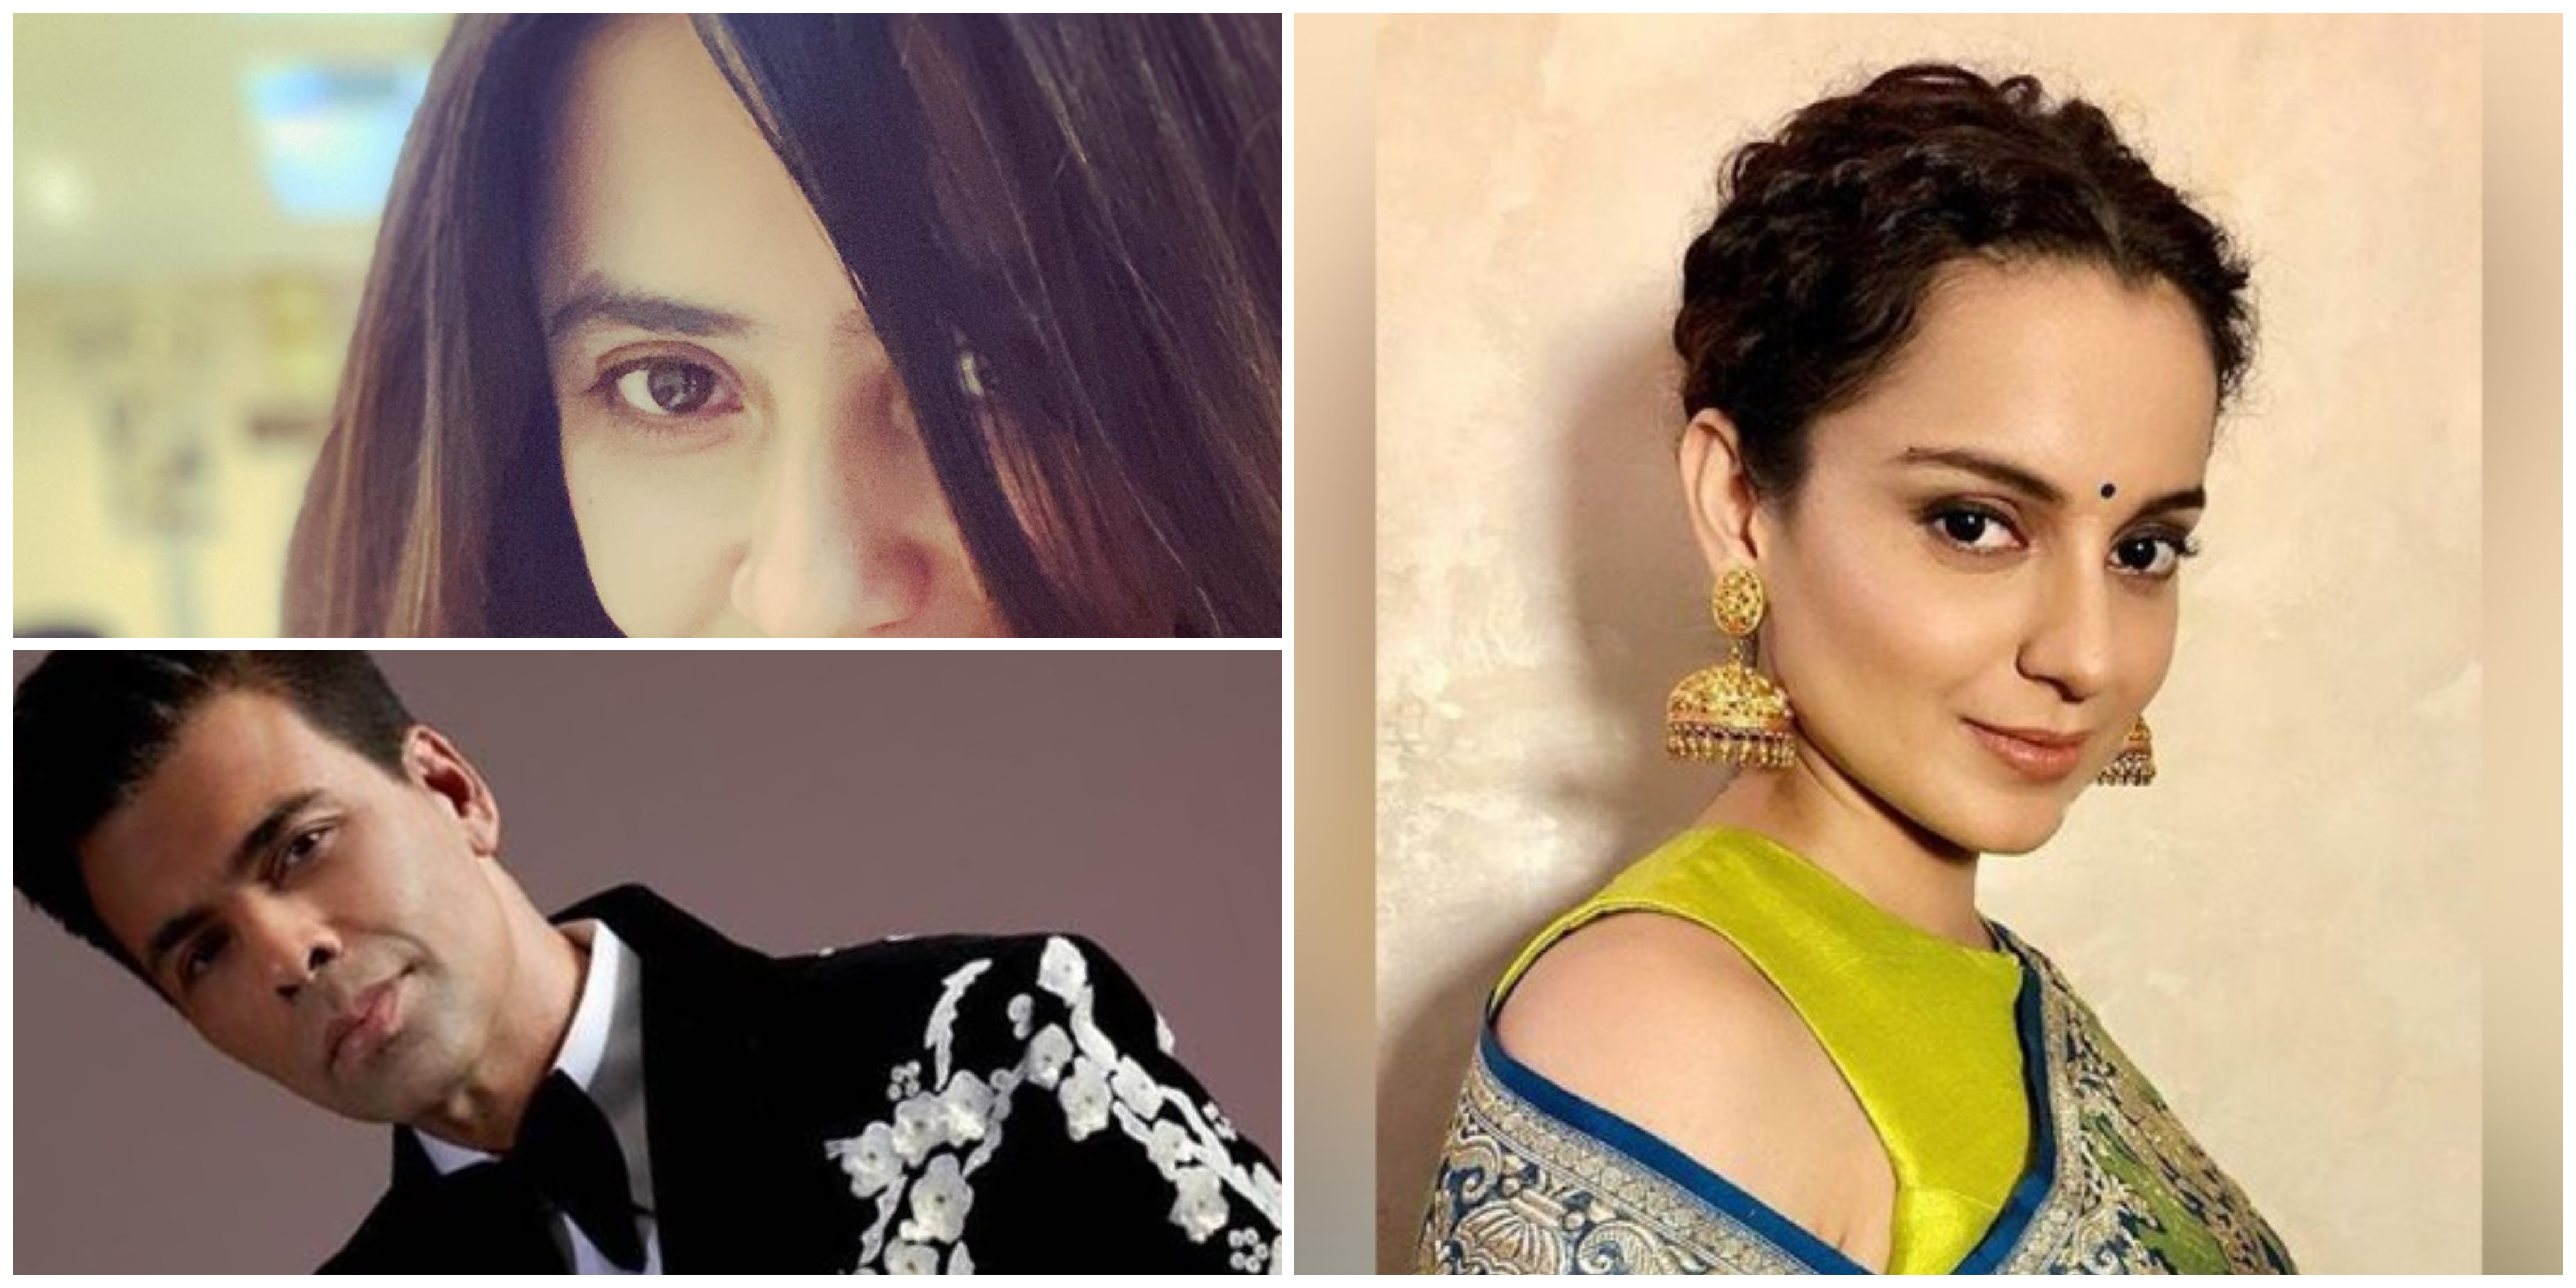 Kangana Ranaut, Ekta Kapoor, Adnan Sami and Karan Johar have been conferred with Padma Shri award.